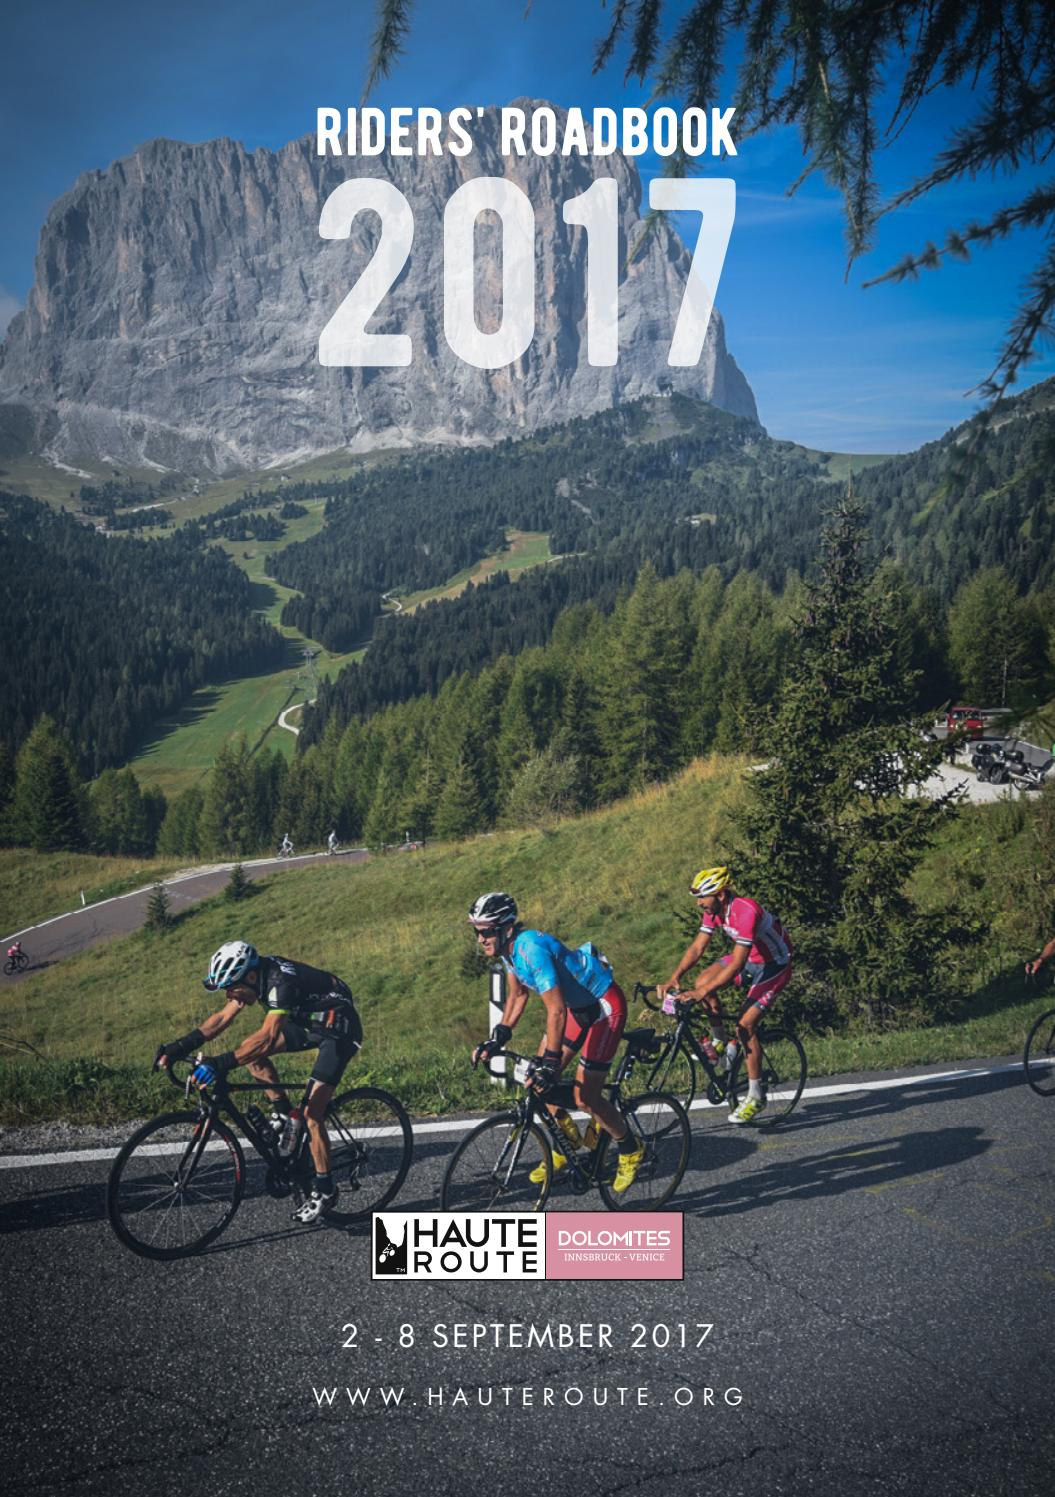 haute route dolomites riders 39 roadbook 2017 by haute route issuu. Black Bedroom Furniture Sets. Home Design Ideas